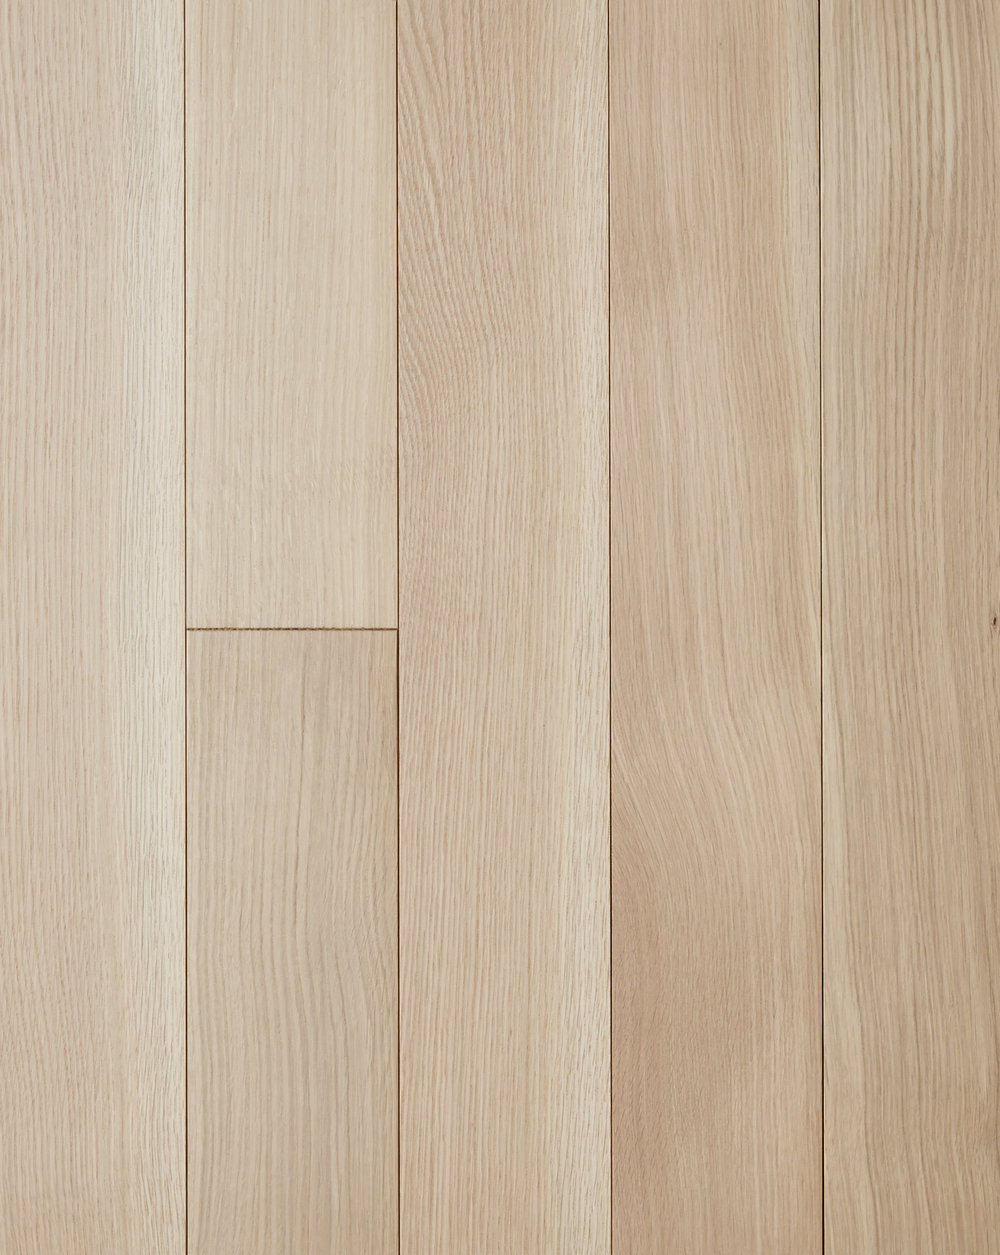 Bare-White Oak-Rift Sawn.jpg